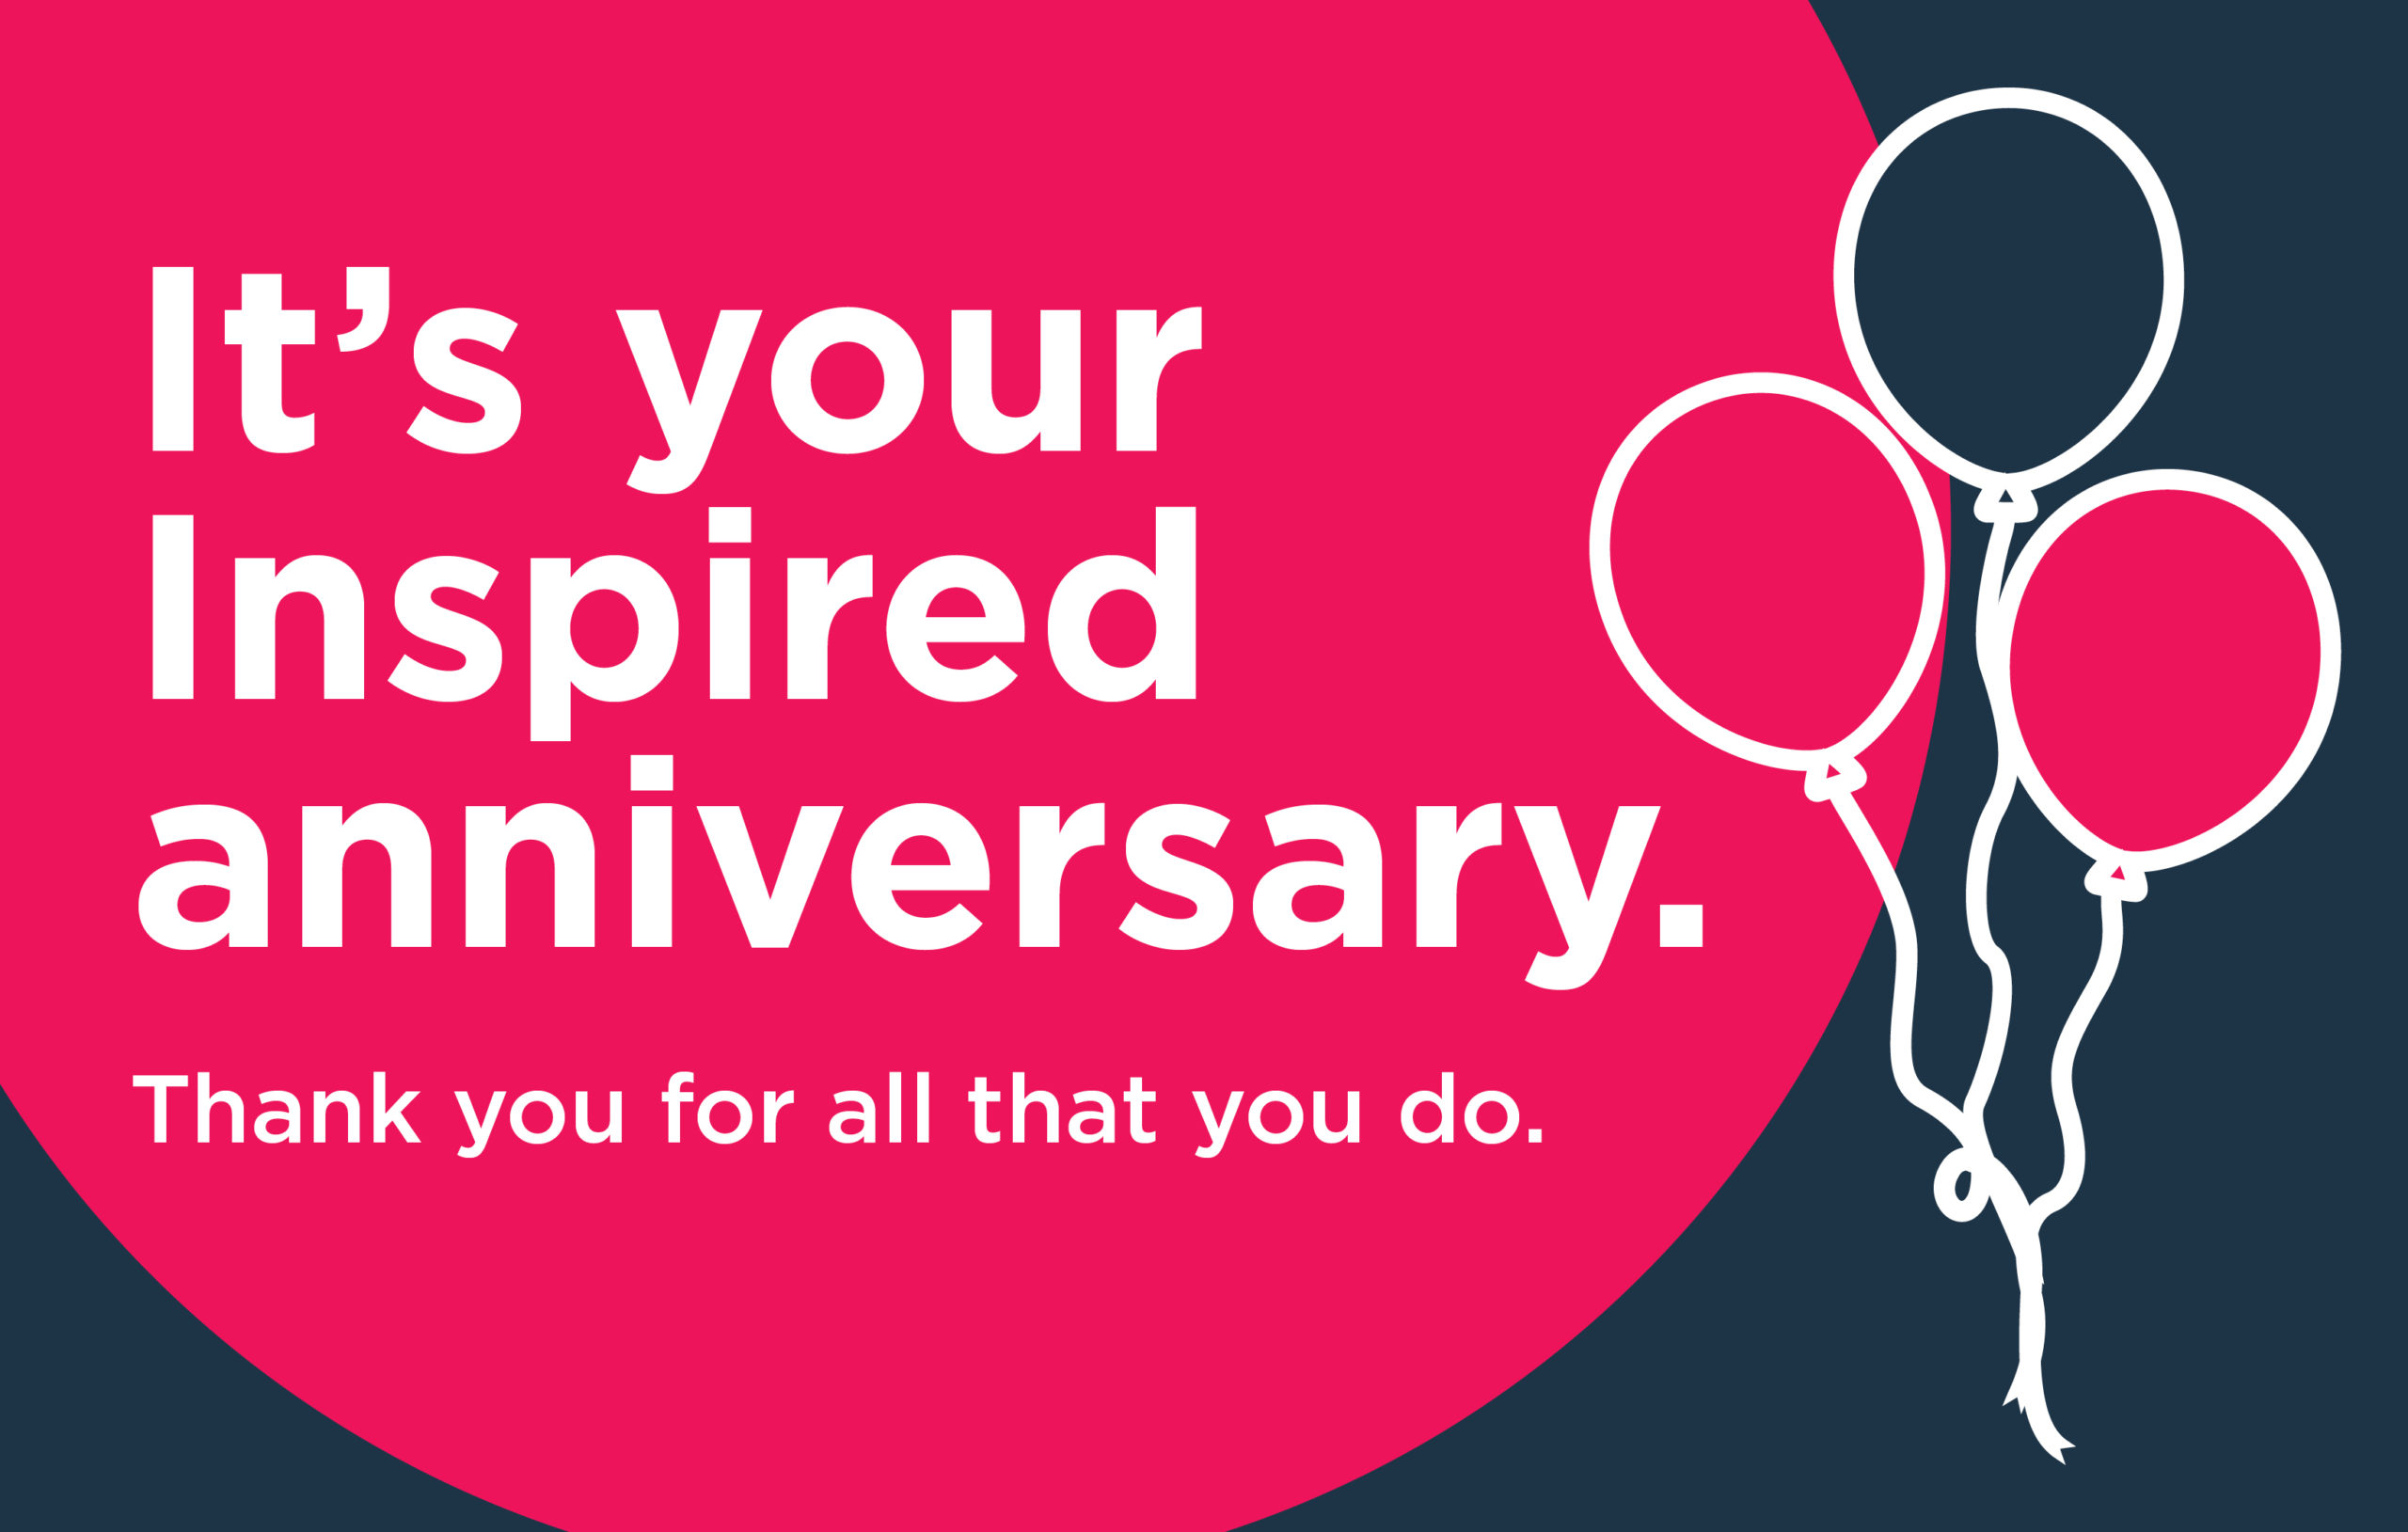 Image of ecard with copy 'It's your Inspired anniversary'